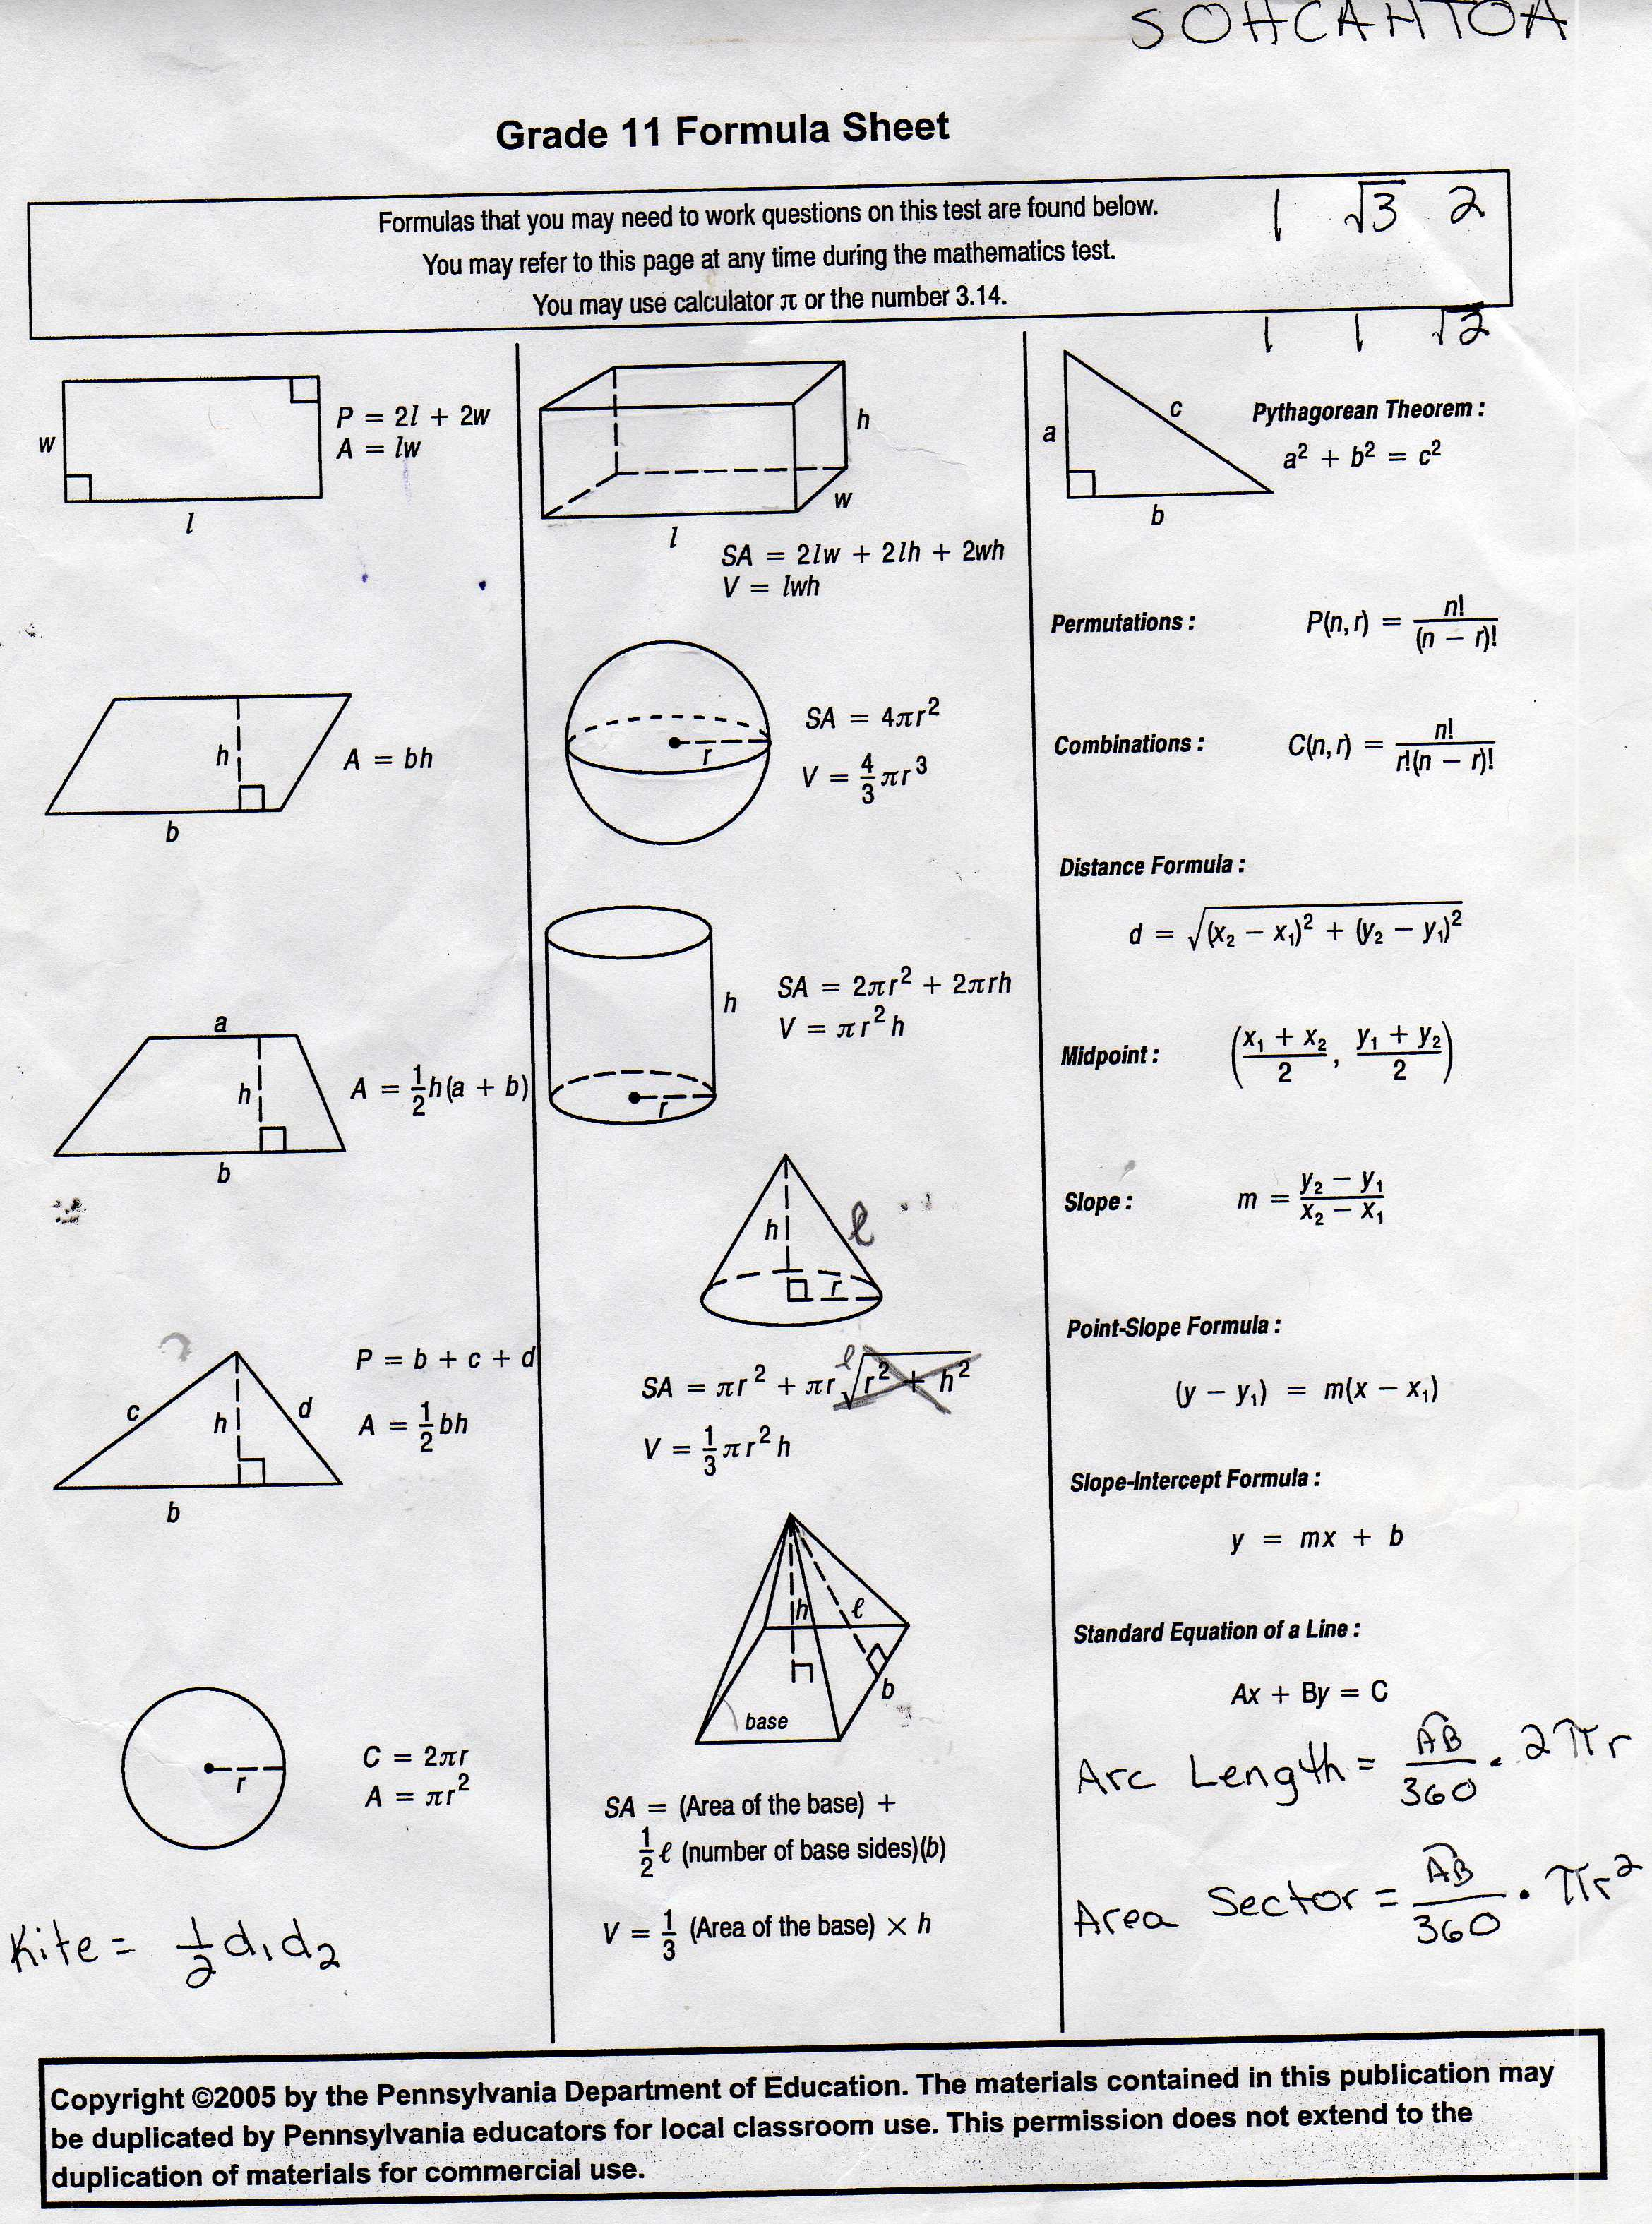 Worksheets Geometry Worksheets 9th Grade ulshafer k honors geometry project websites information